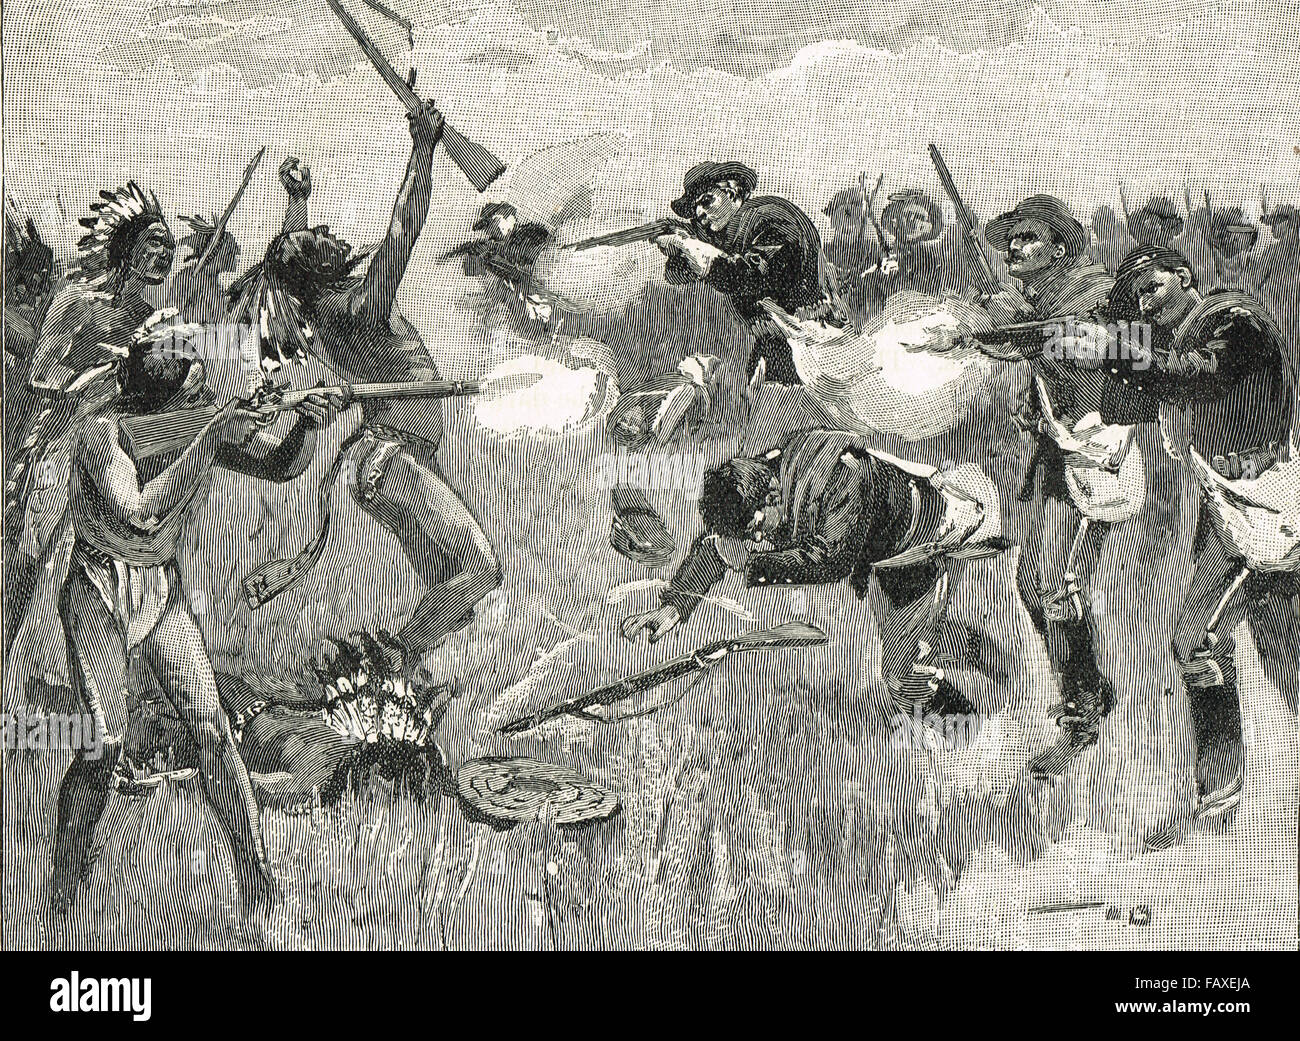 US Army fighting Sioux Indians Great Sioux War 1876 - Stock Image